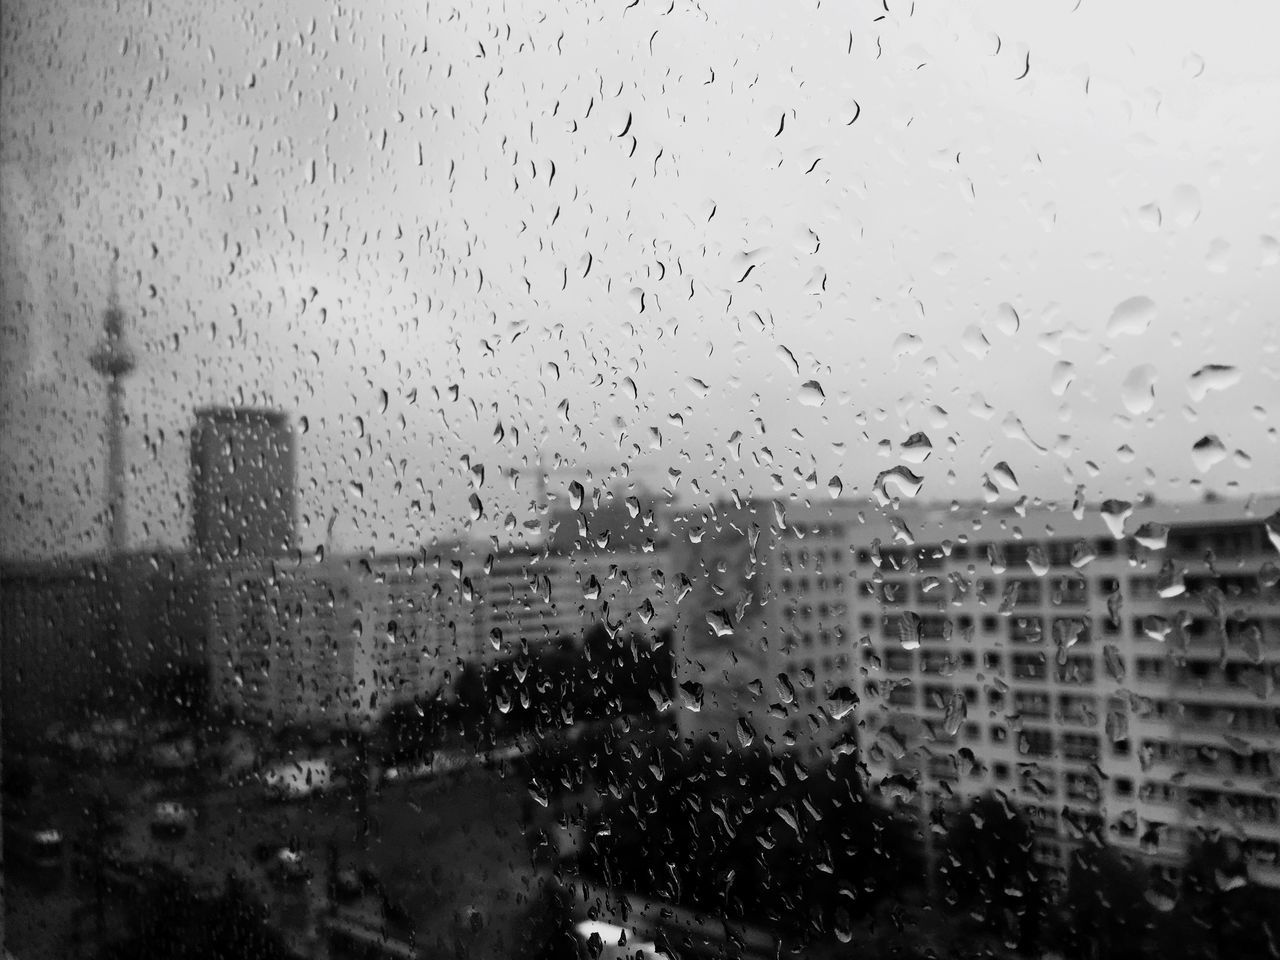 rain, drop, wet, window, rainy season, raindrop, weather, water, glass - material, water drop, no people, droplet, indoors, full frame, backgrounds, day, sky, close-up, architecture, nature, freshness